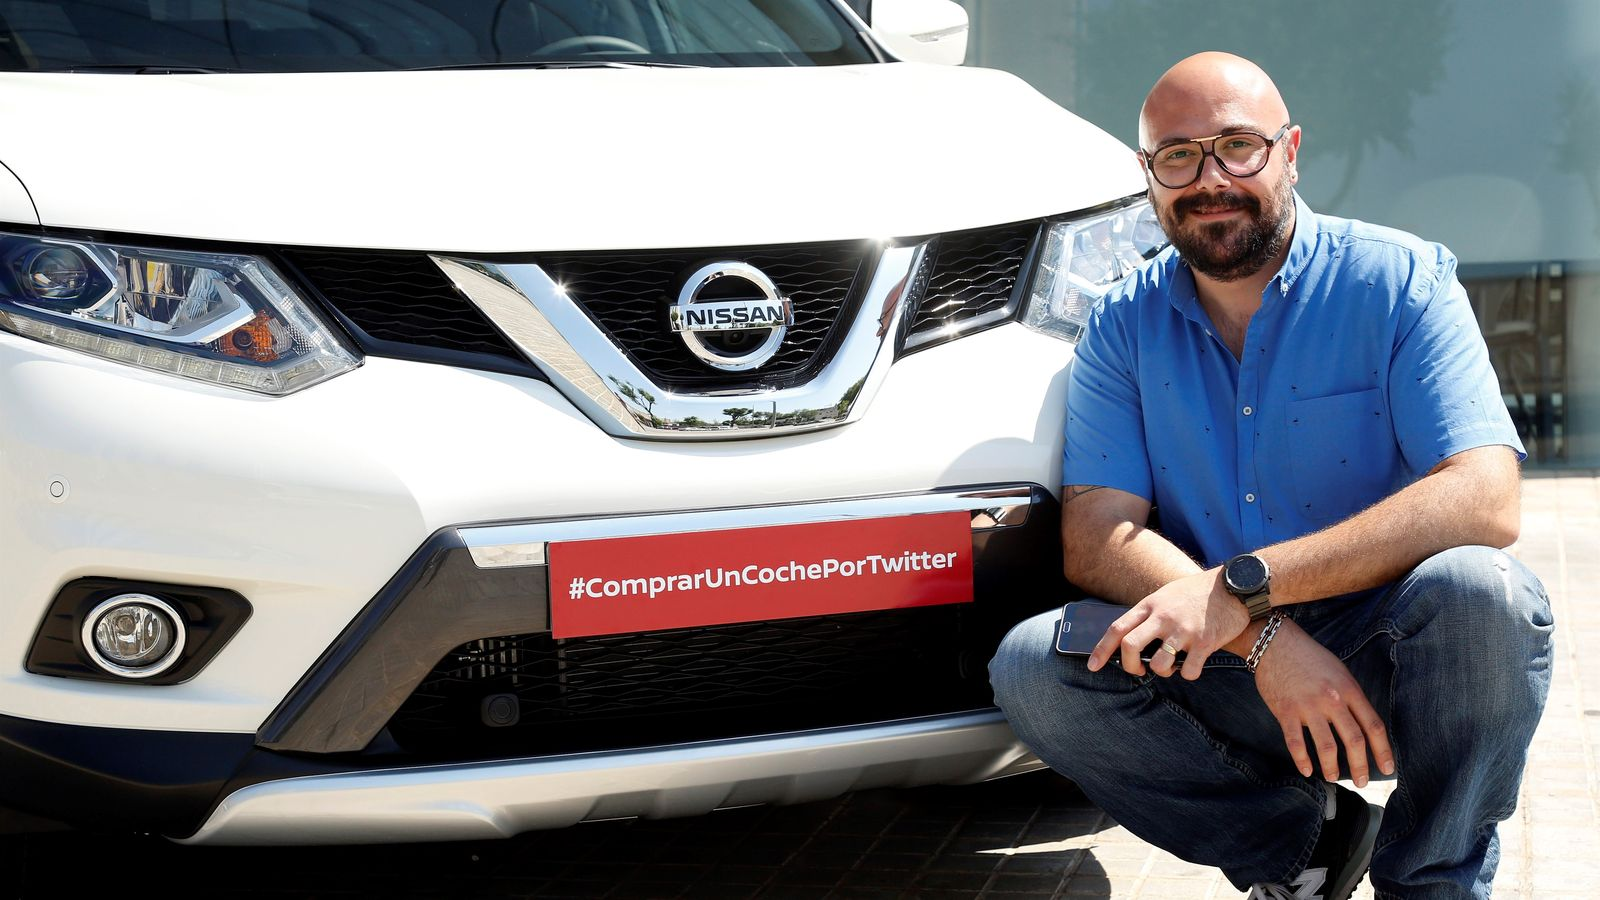 nissan car sold on twitter